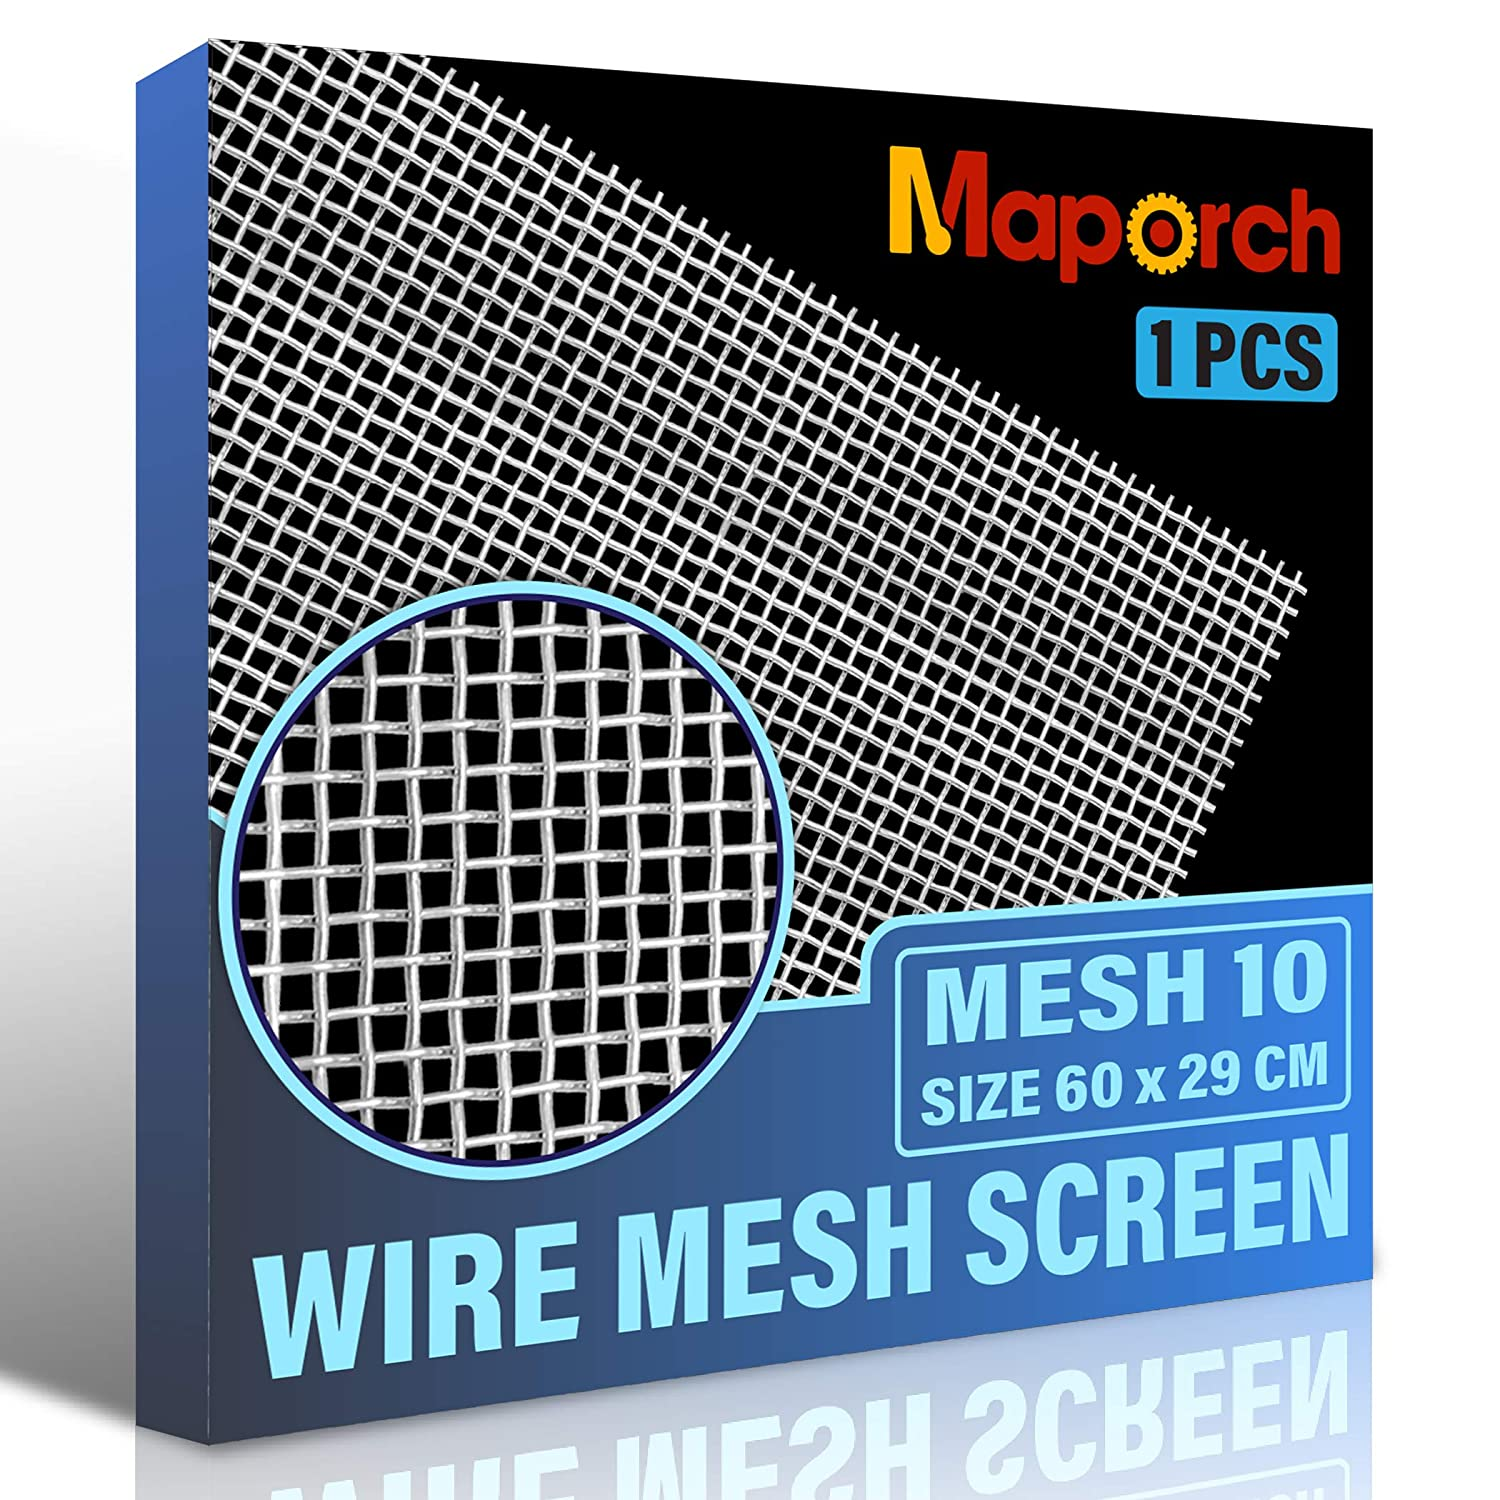 MAPORCH 304 Stainless Steel Mesh Screen Type Mesh 10 Wire 11.4